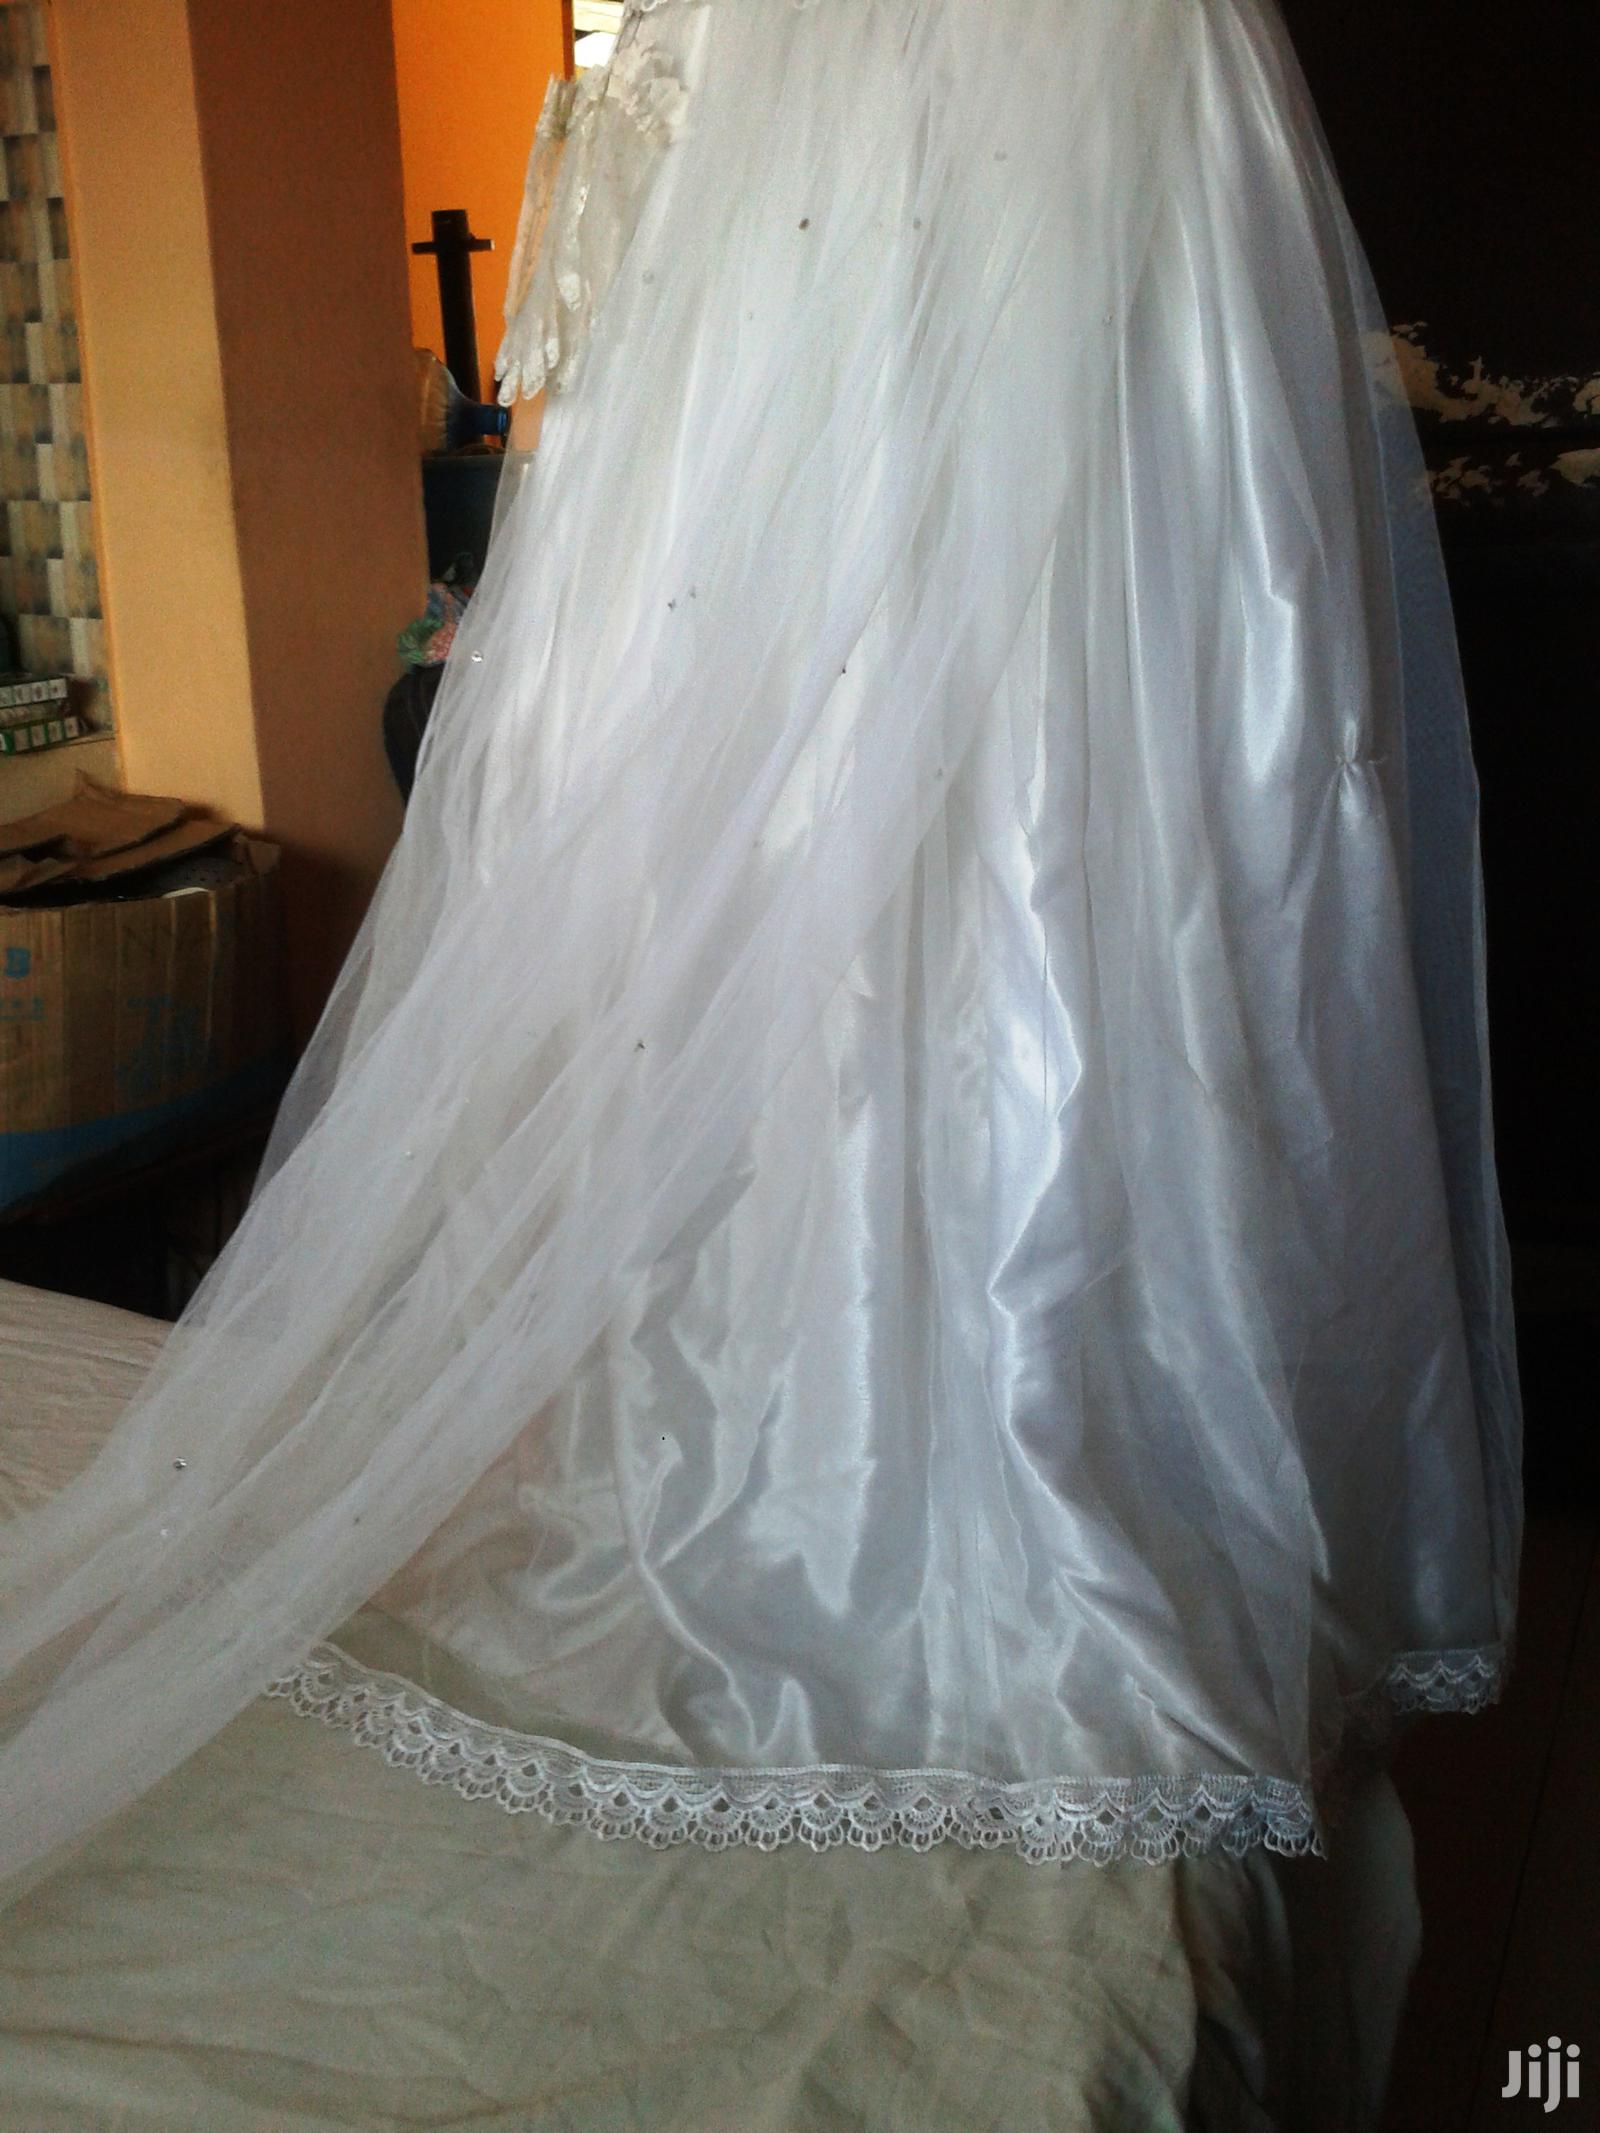 Weddiing Gown For Sale | Wedding Wear & Accessories for sale in Ziwa la Ng'ombe , Mombasa, Kenya